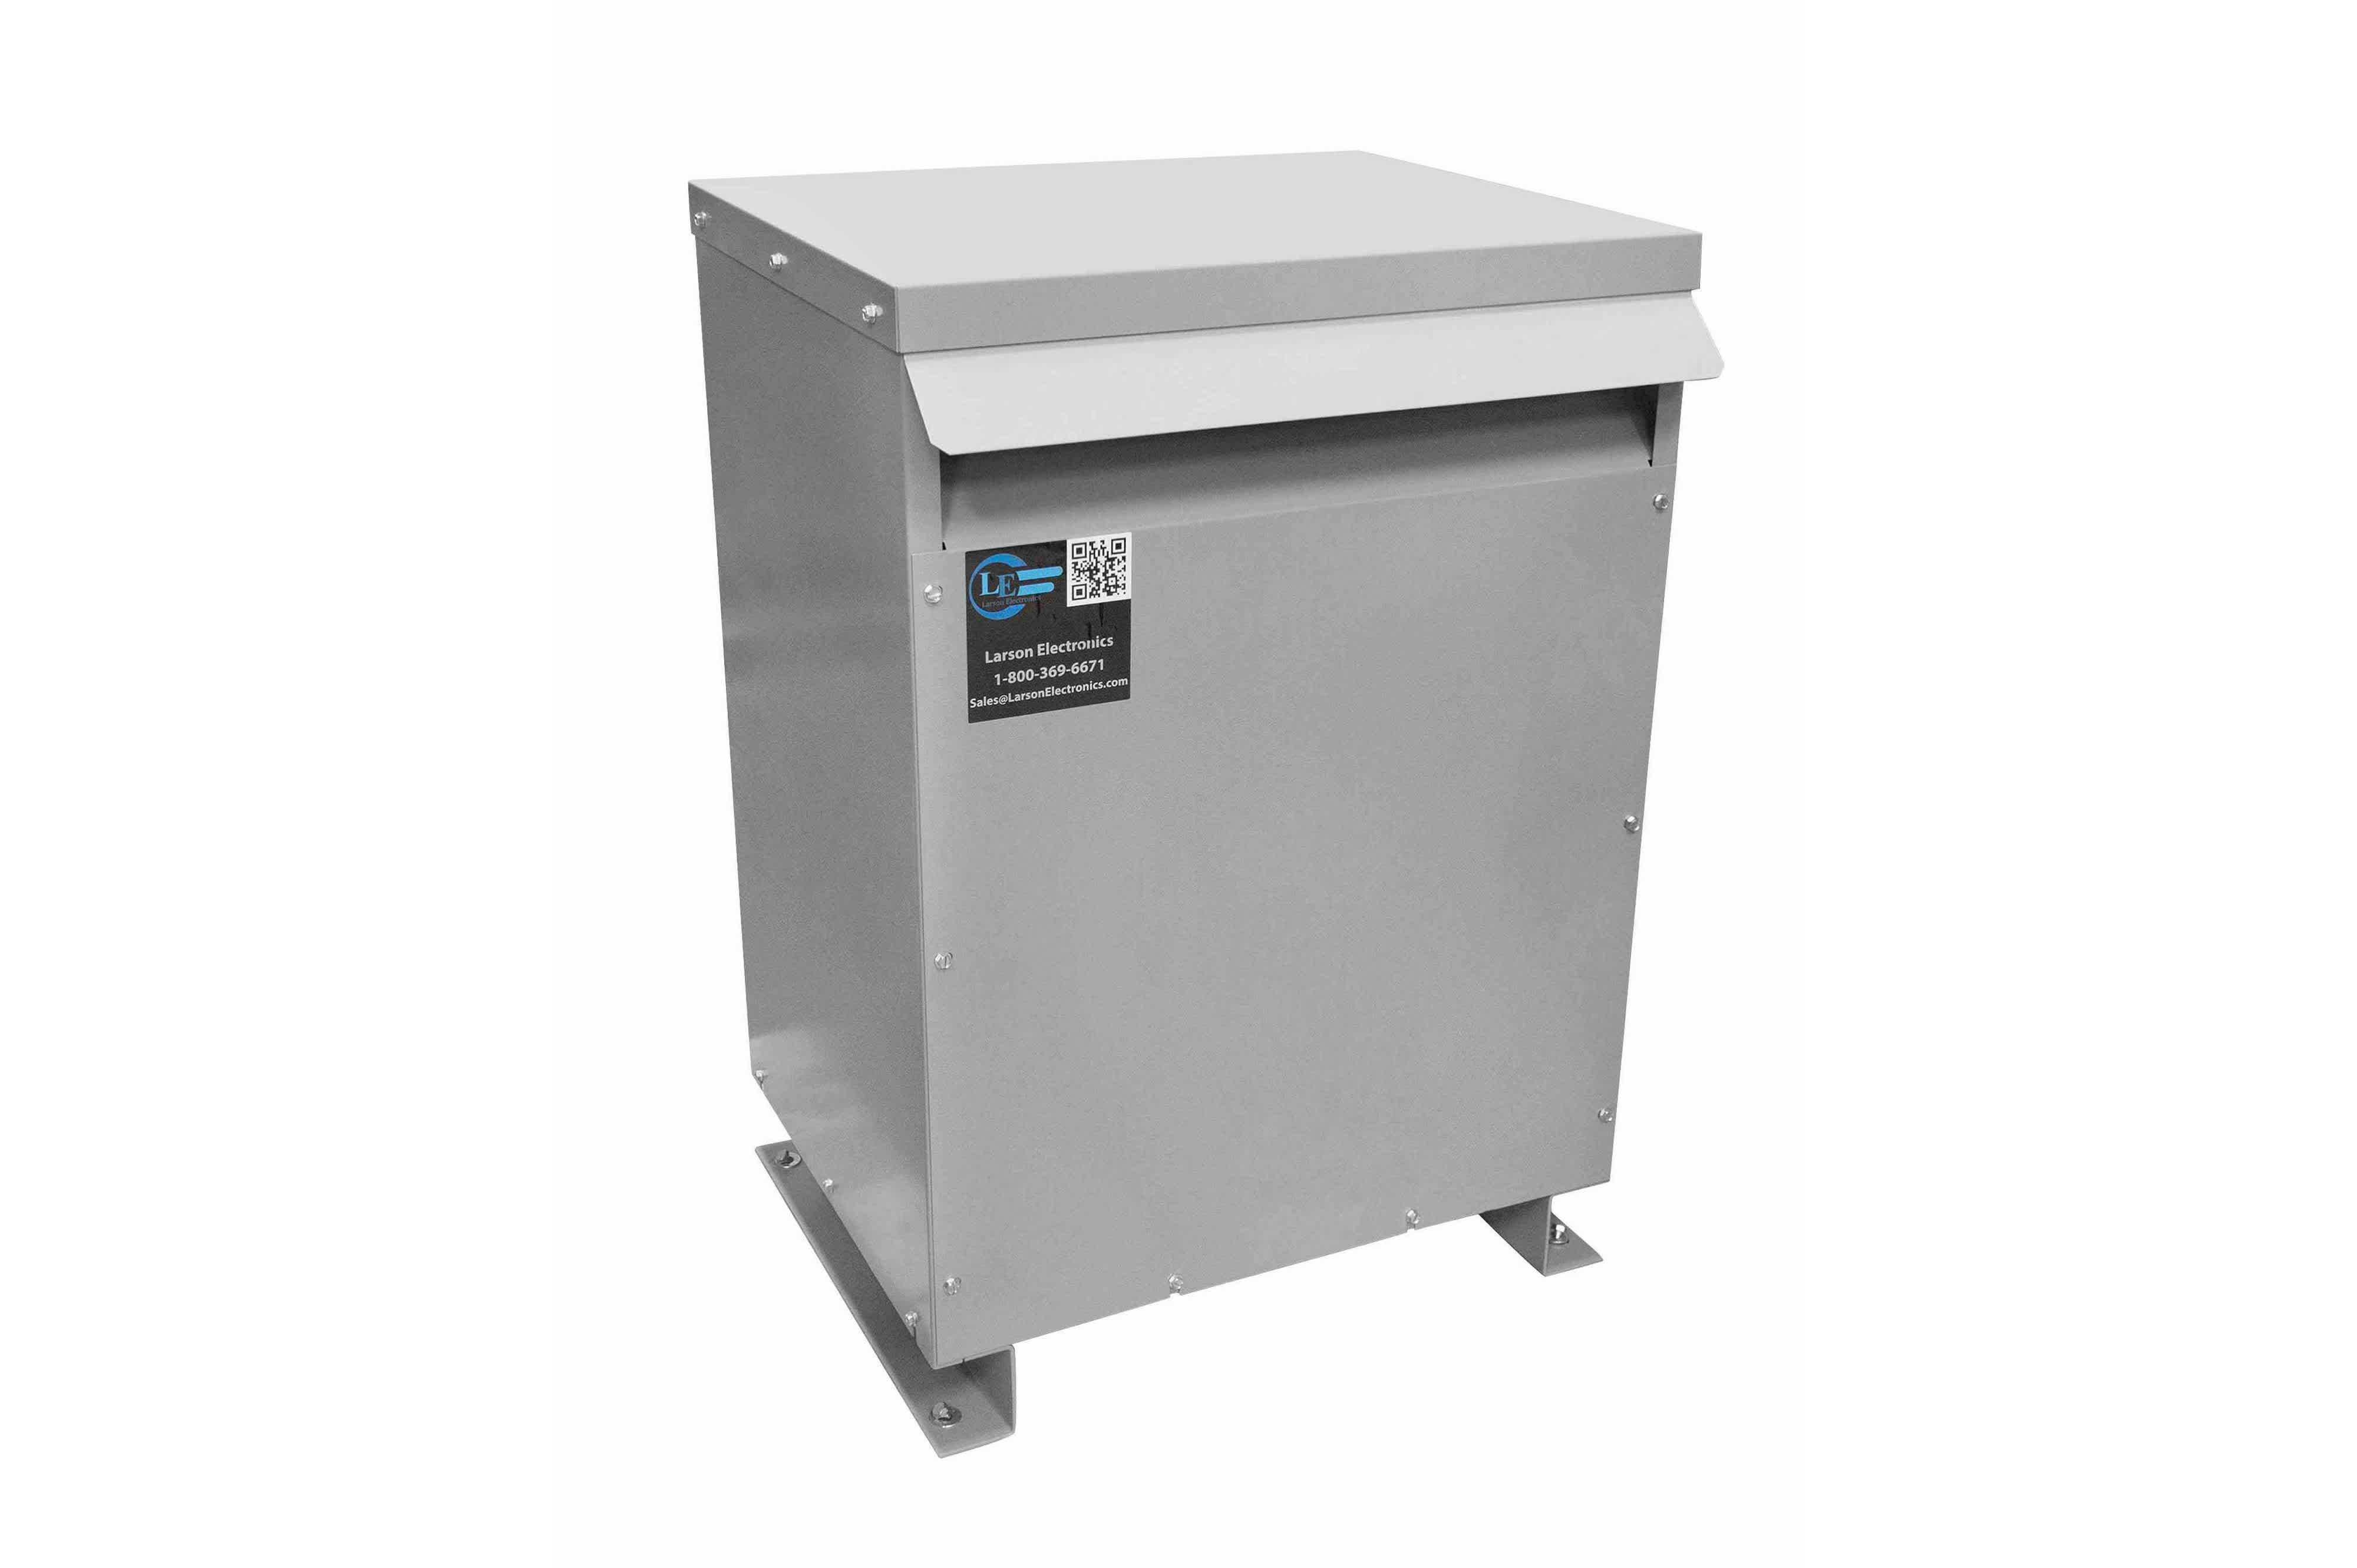 28 kVA 3PH Isolation Transformer, 575V Wye Primary, 400V Delta Secondary, N3R, Ventilated, 60 Hz